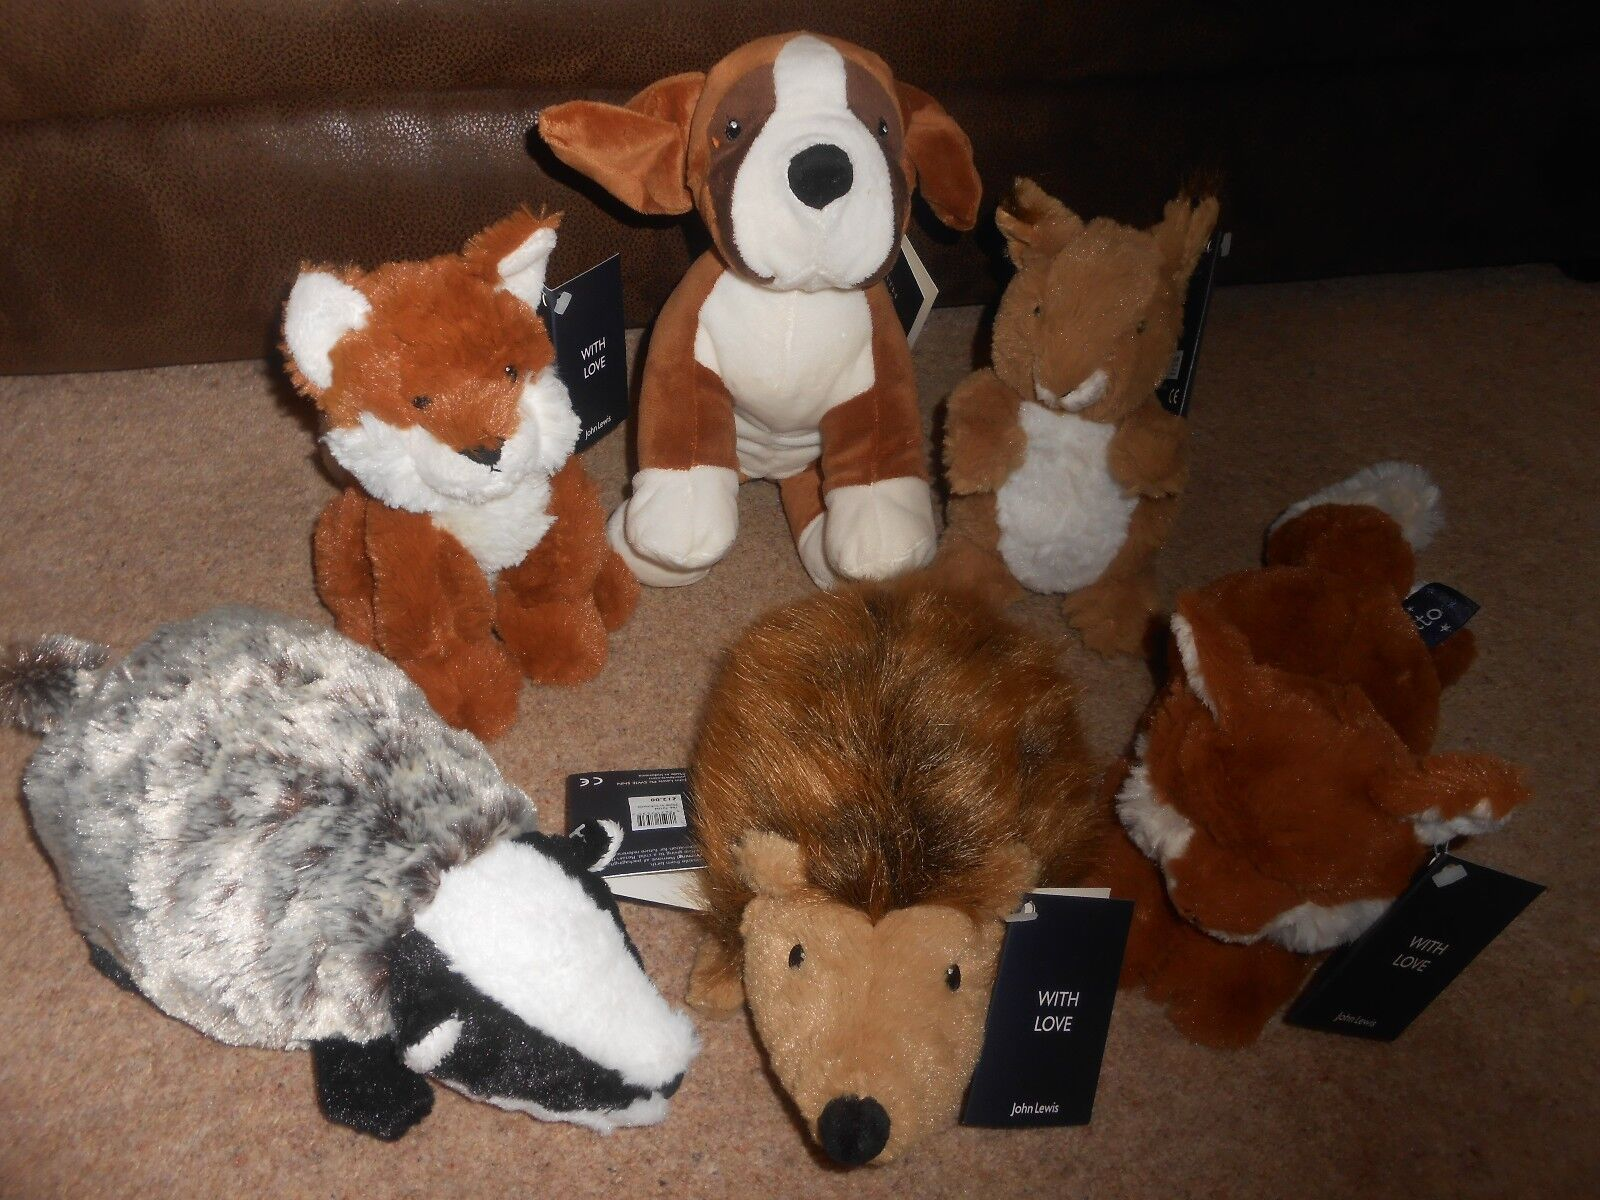 JOHN LEWIS BUSTER BUSTER BUSTER THE BOXER & FRIENDS COMPLETE SET e62abb